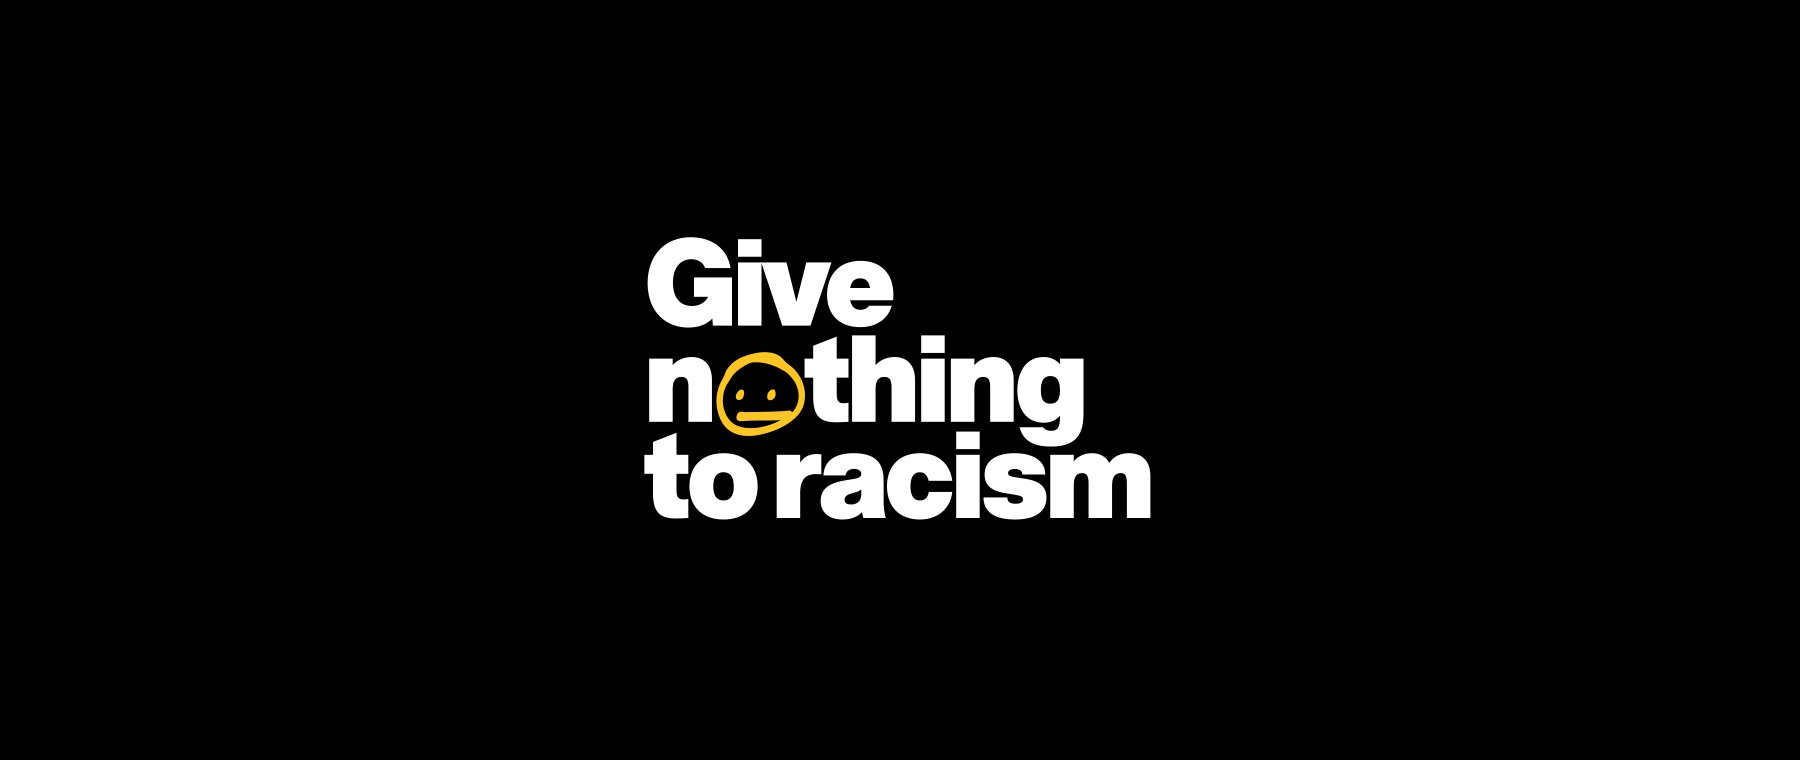 give-nothing-website-banner.jpg